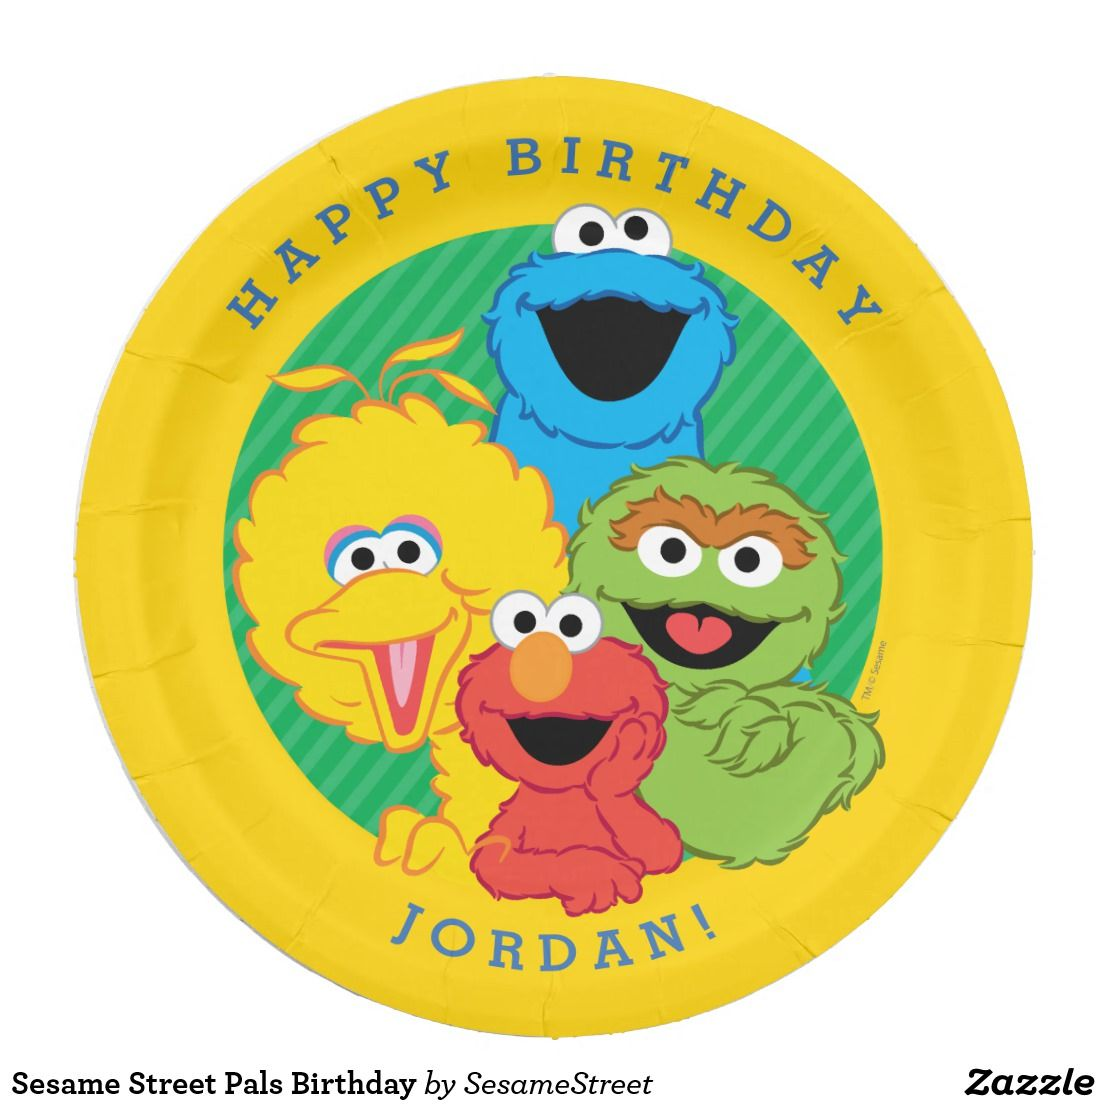 Sesame Street Pals Birthday Paper Plate  sc 1 st  Pinterest & Sesame Street Pals Birthday Paper Plate | Sesame streets